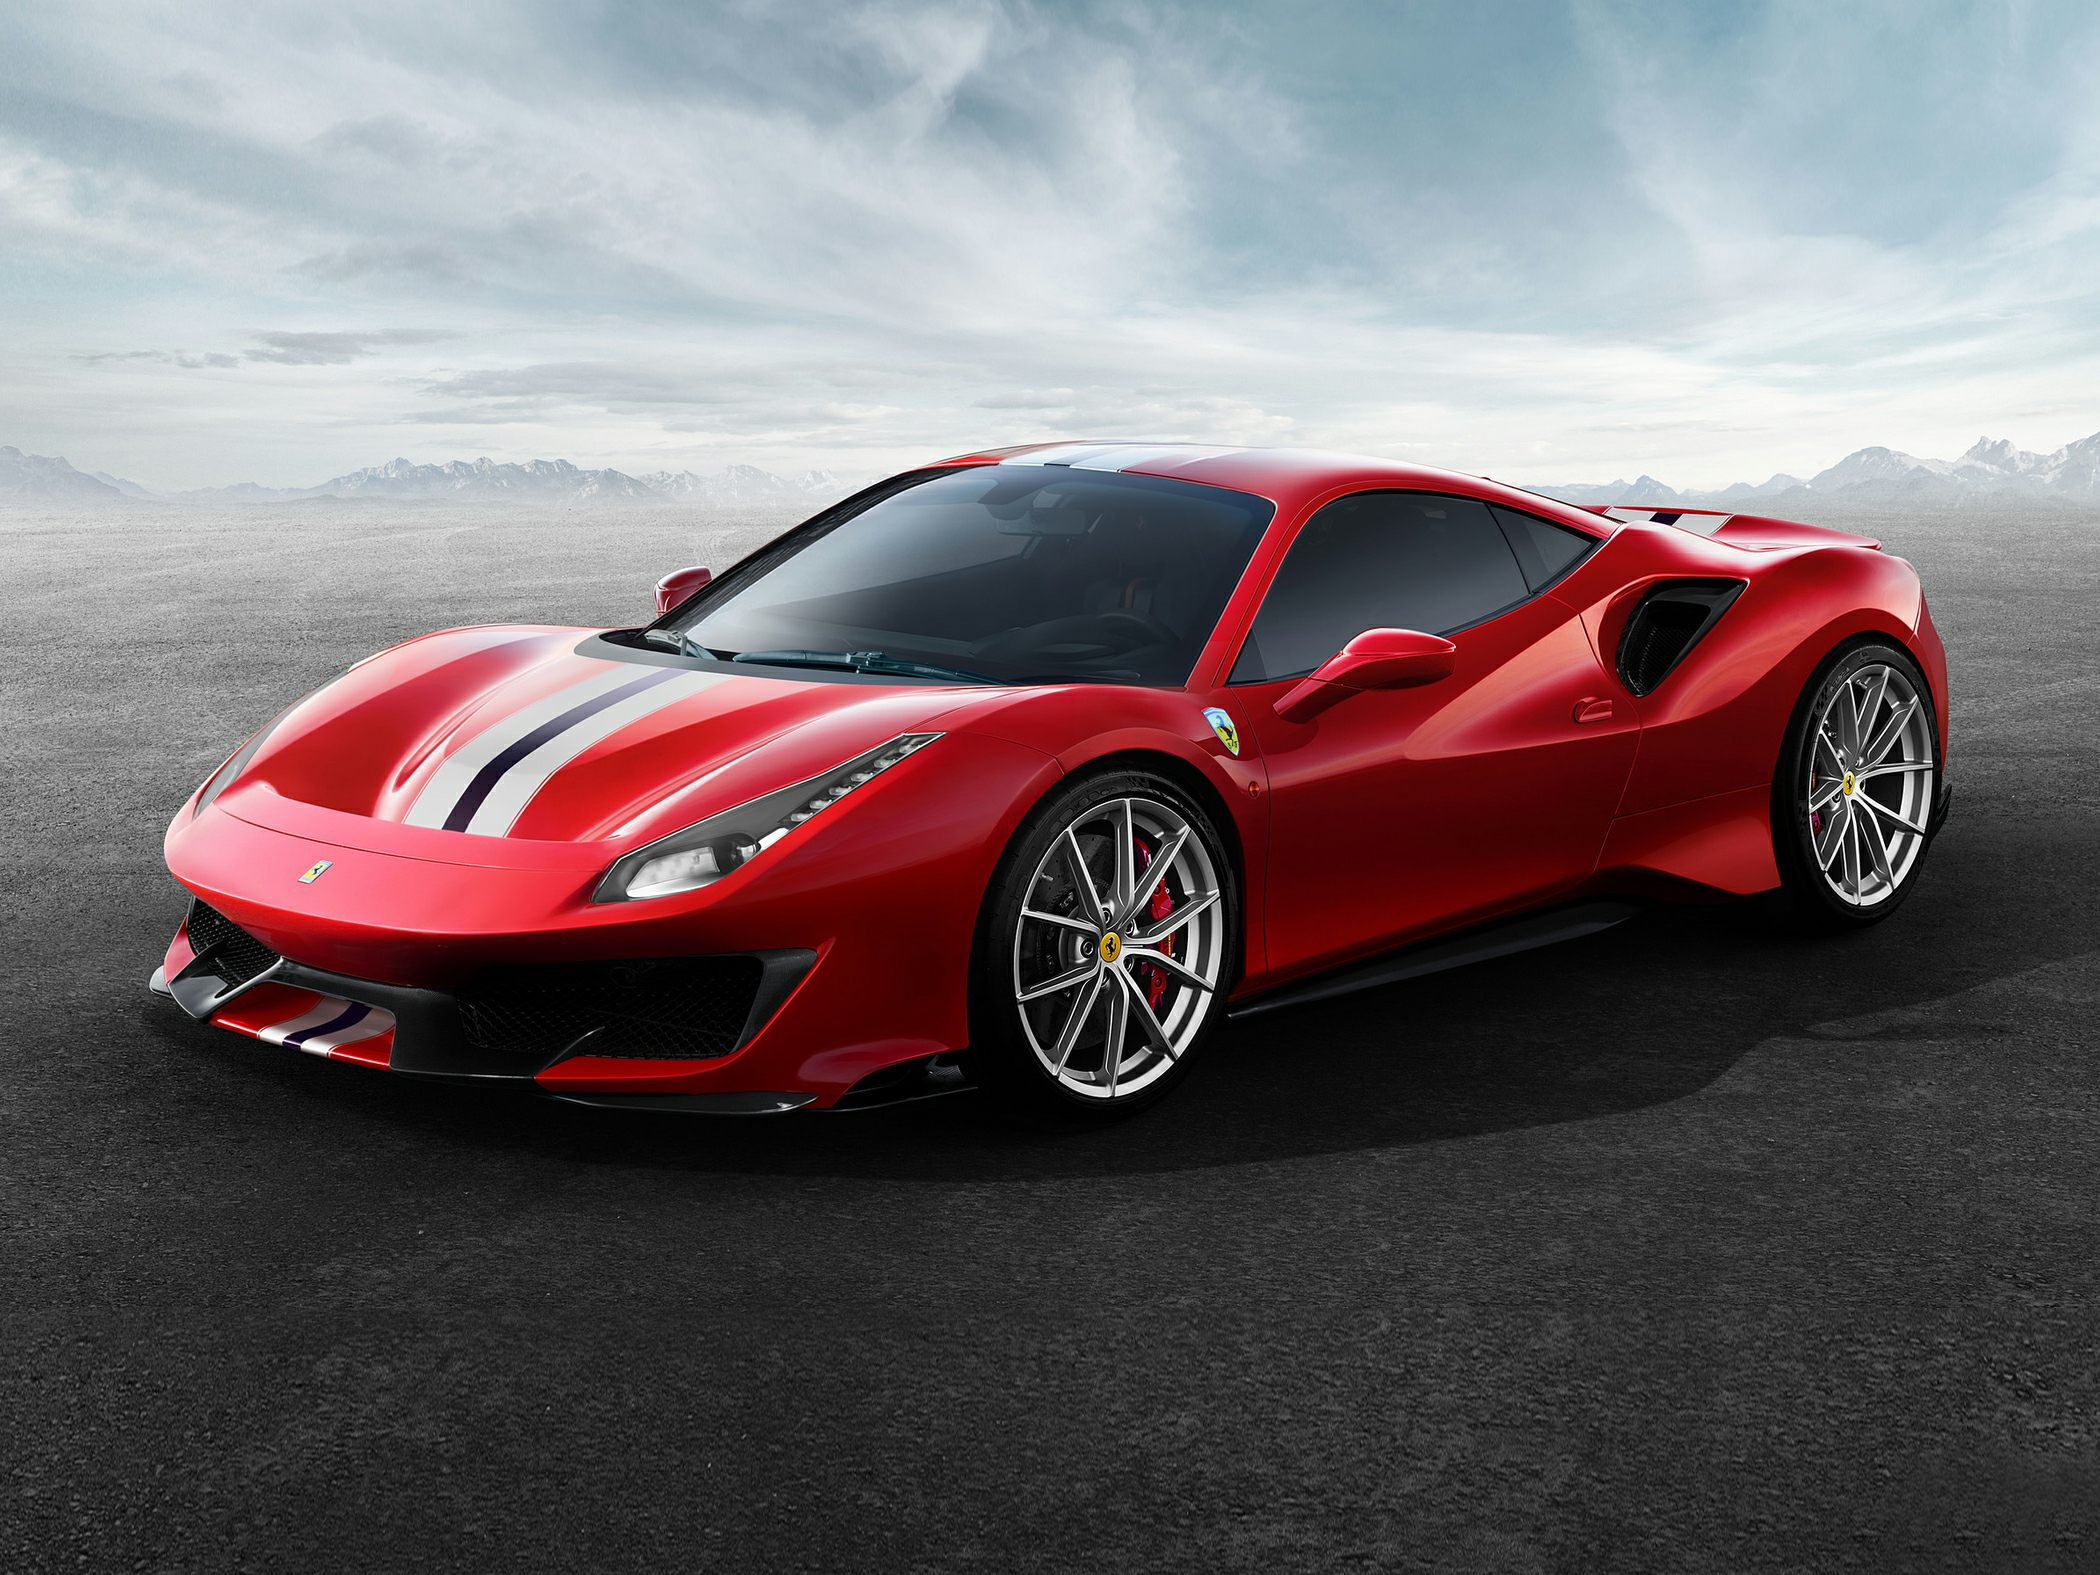 2020 Ferrari 488 Pista Base 2dr Coupe Specs And Prices